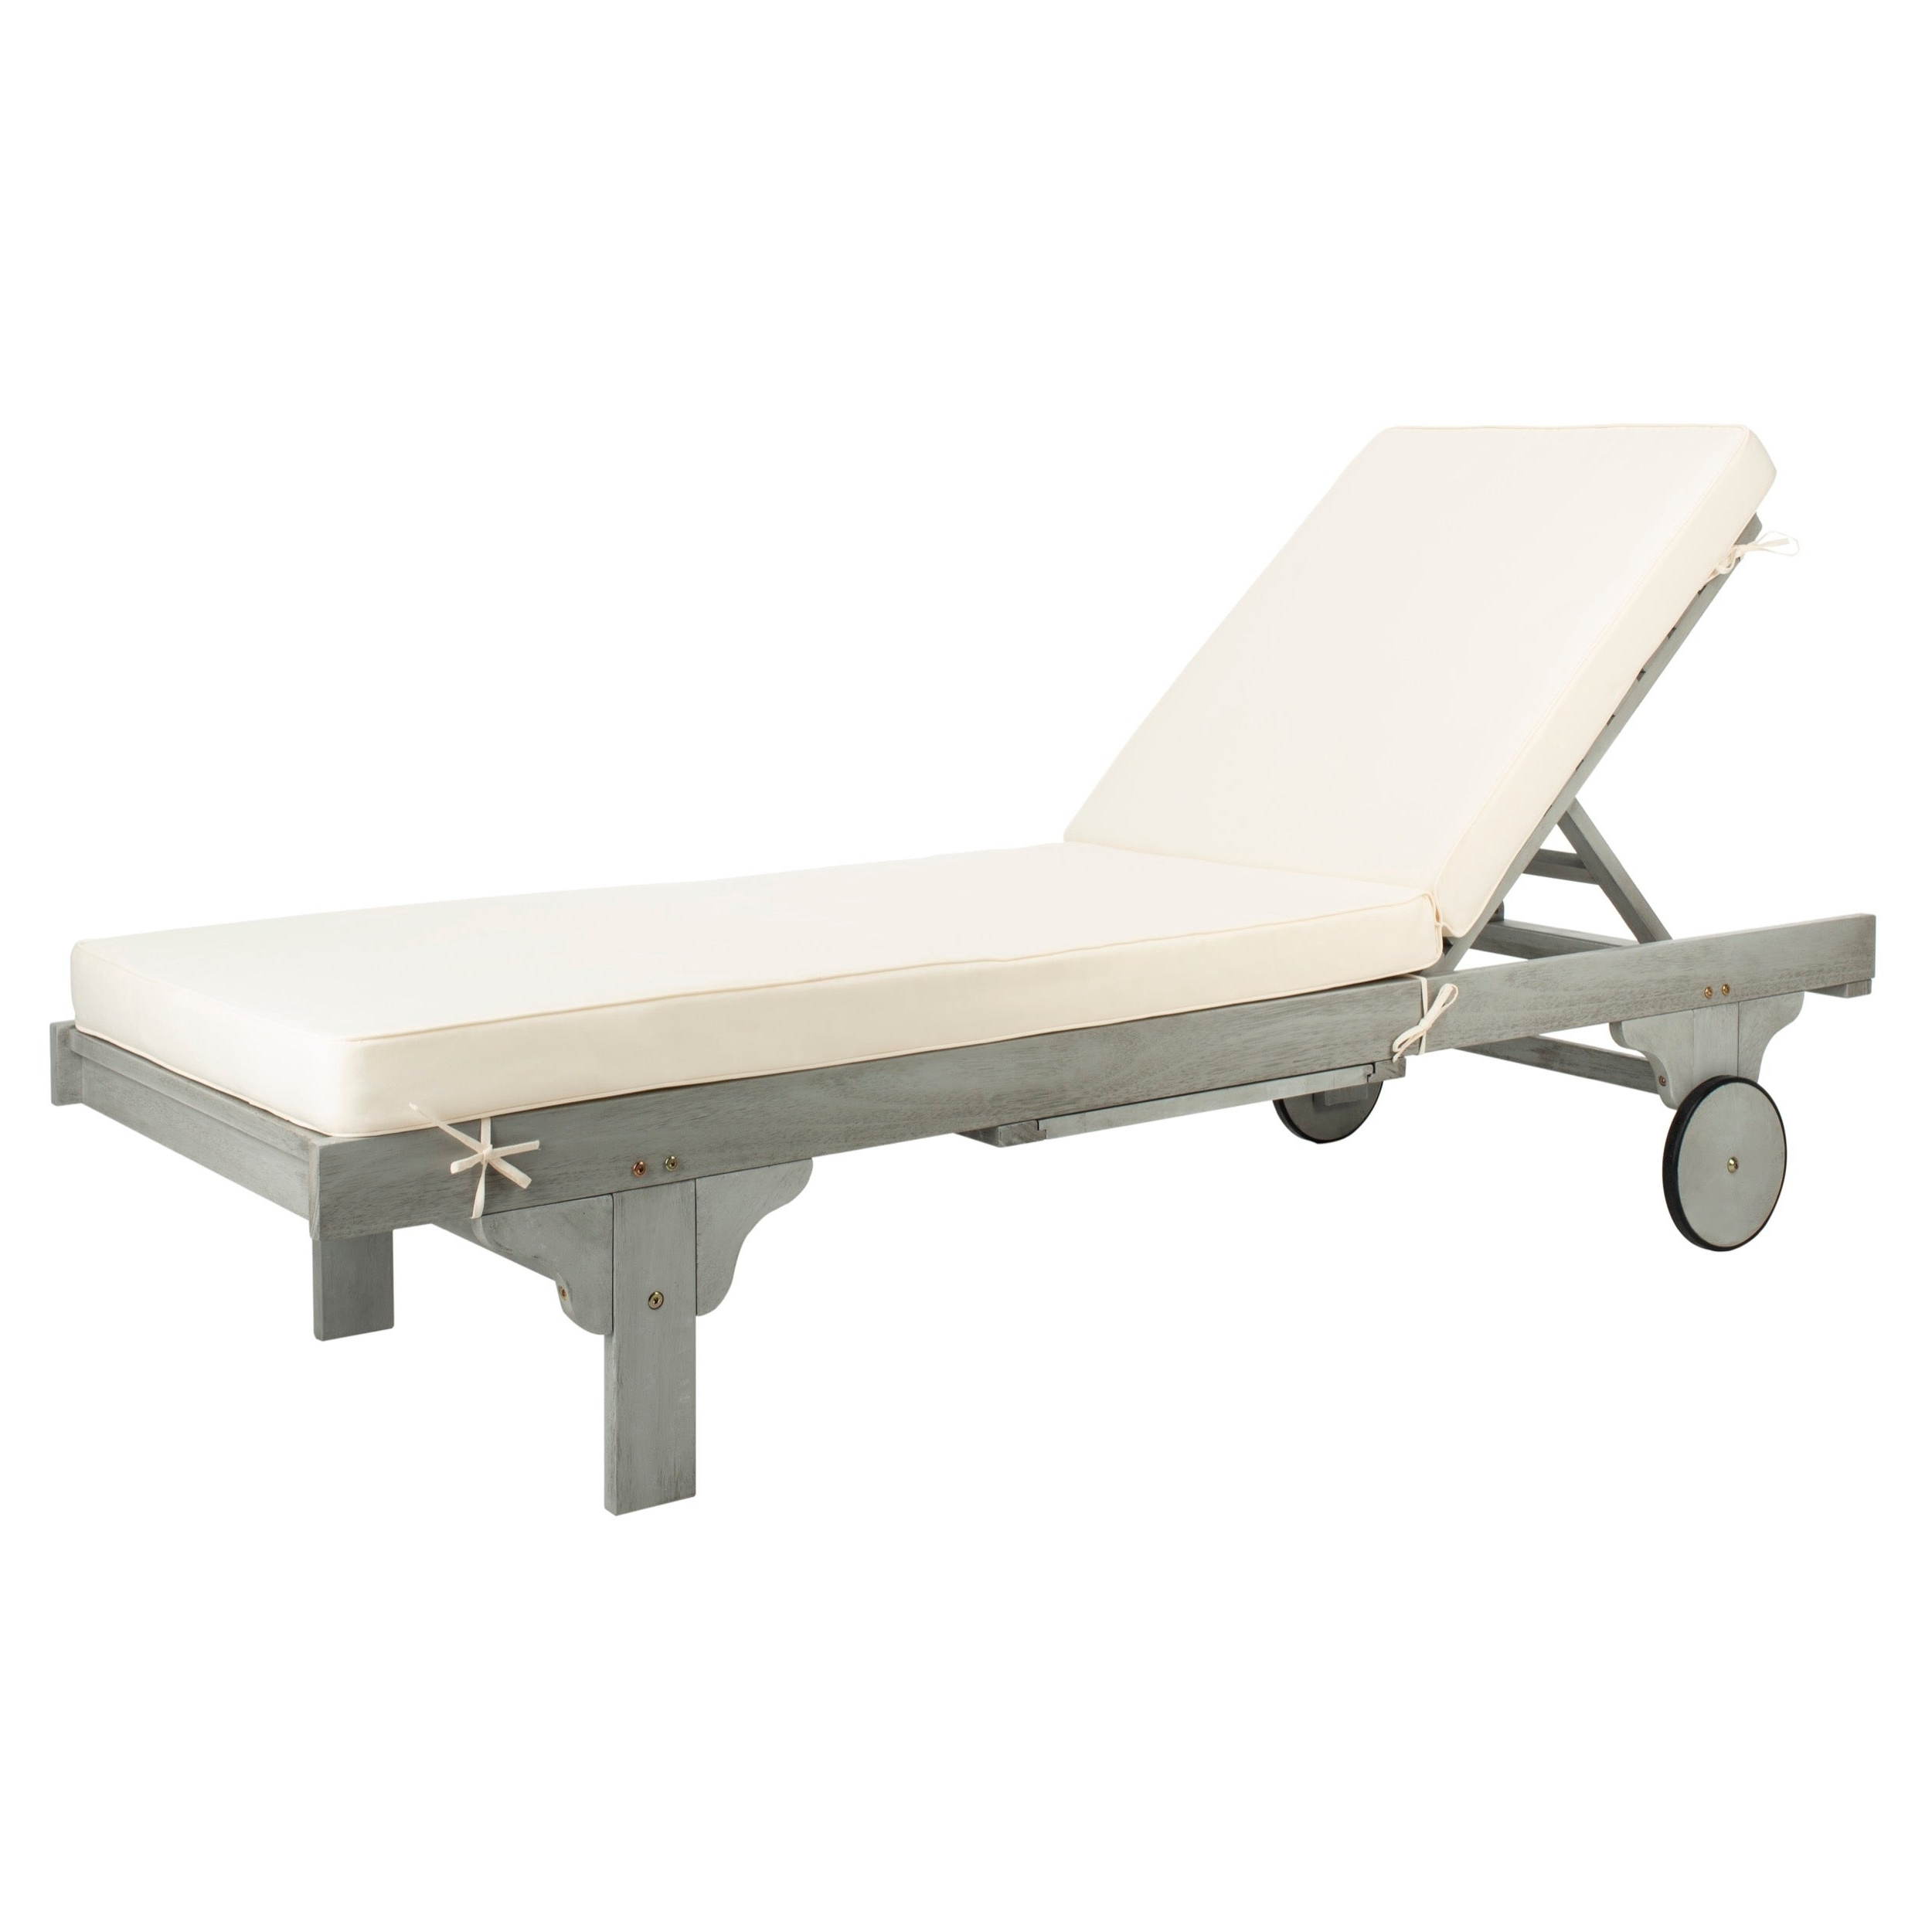 "Outdoor Cart Wheel Adjustable Chaise Lounge Chairs Within Newest Safavieh Outdoor Living Newport Ash Grey/ White Cart Wheel Adjustable Chaise Lounge Chair – 27.6"" X 78.7"" X (View 4 of 25)"